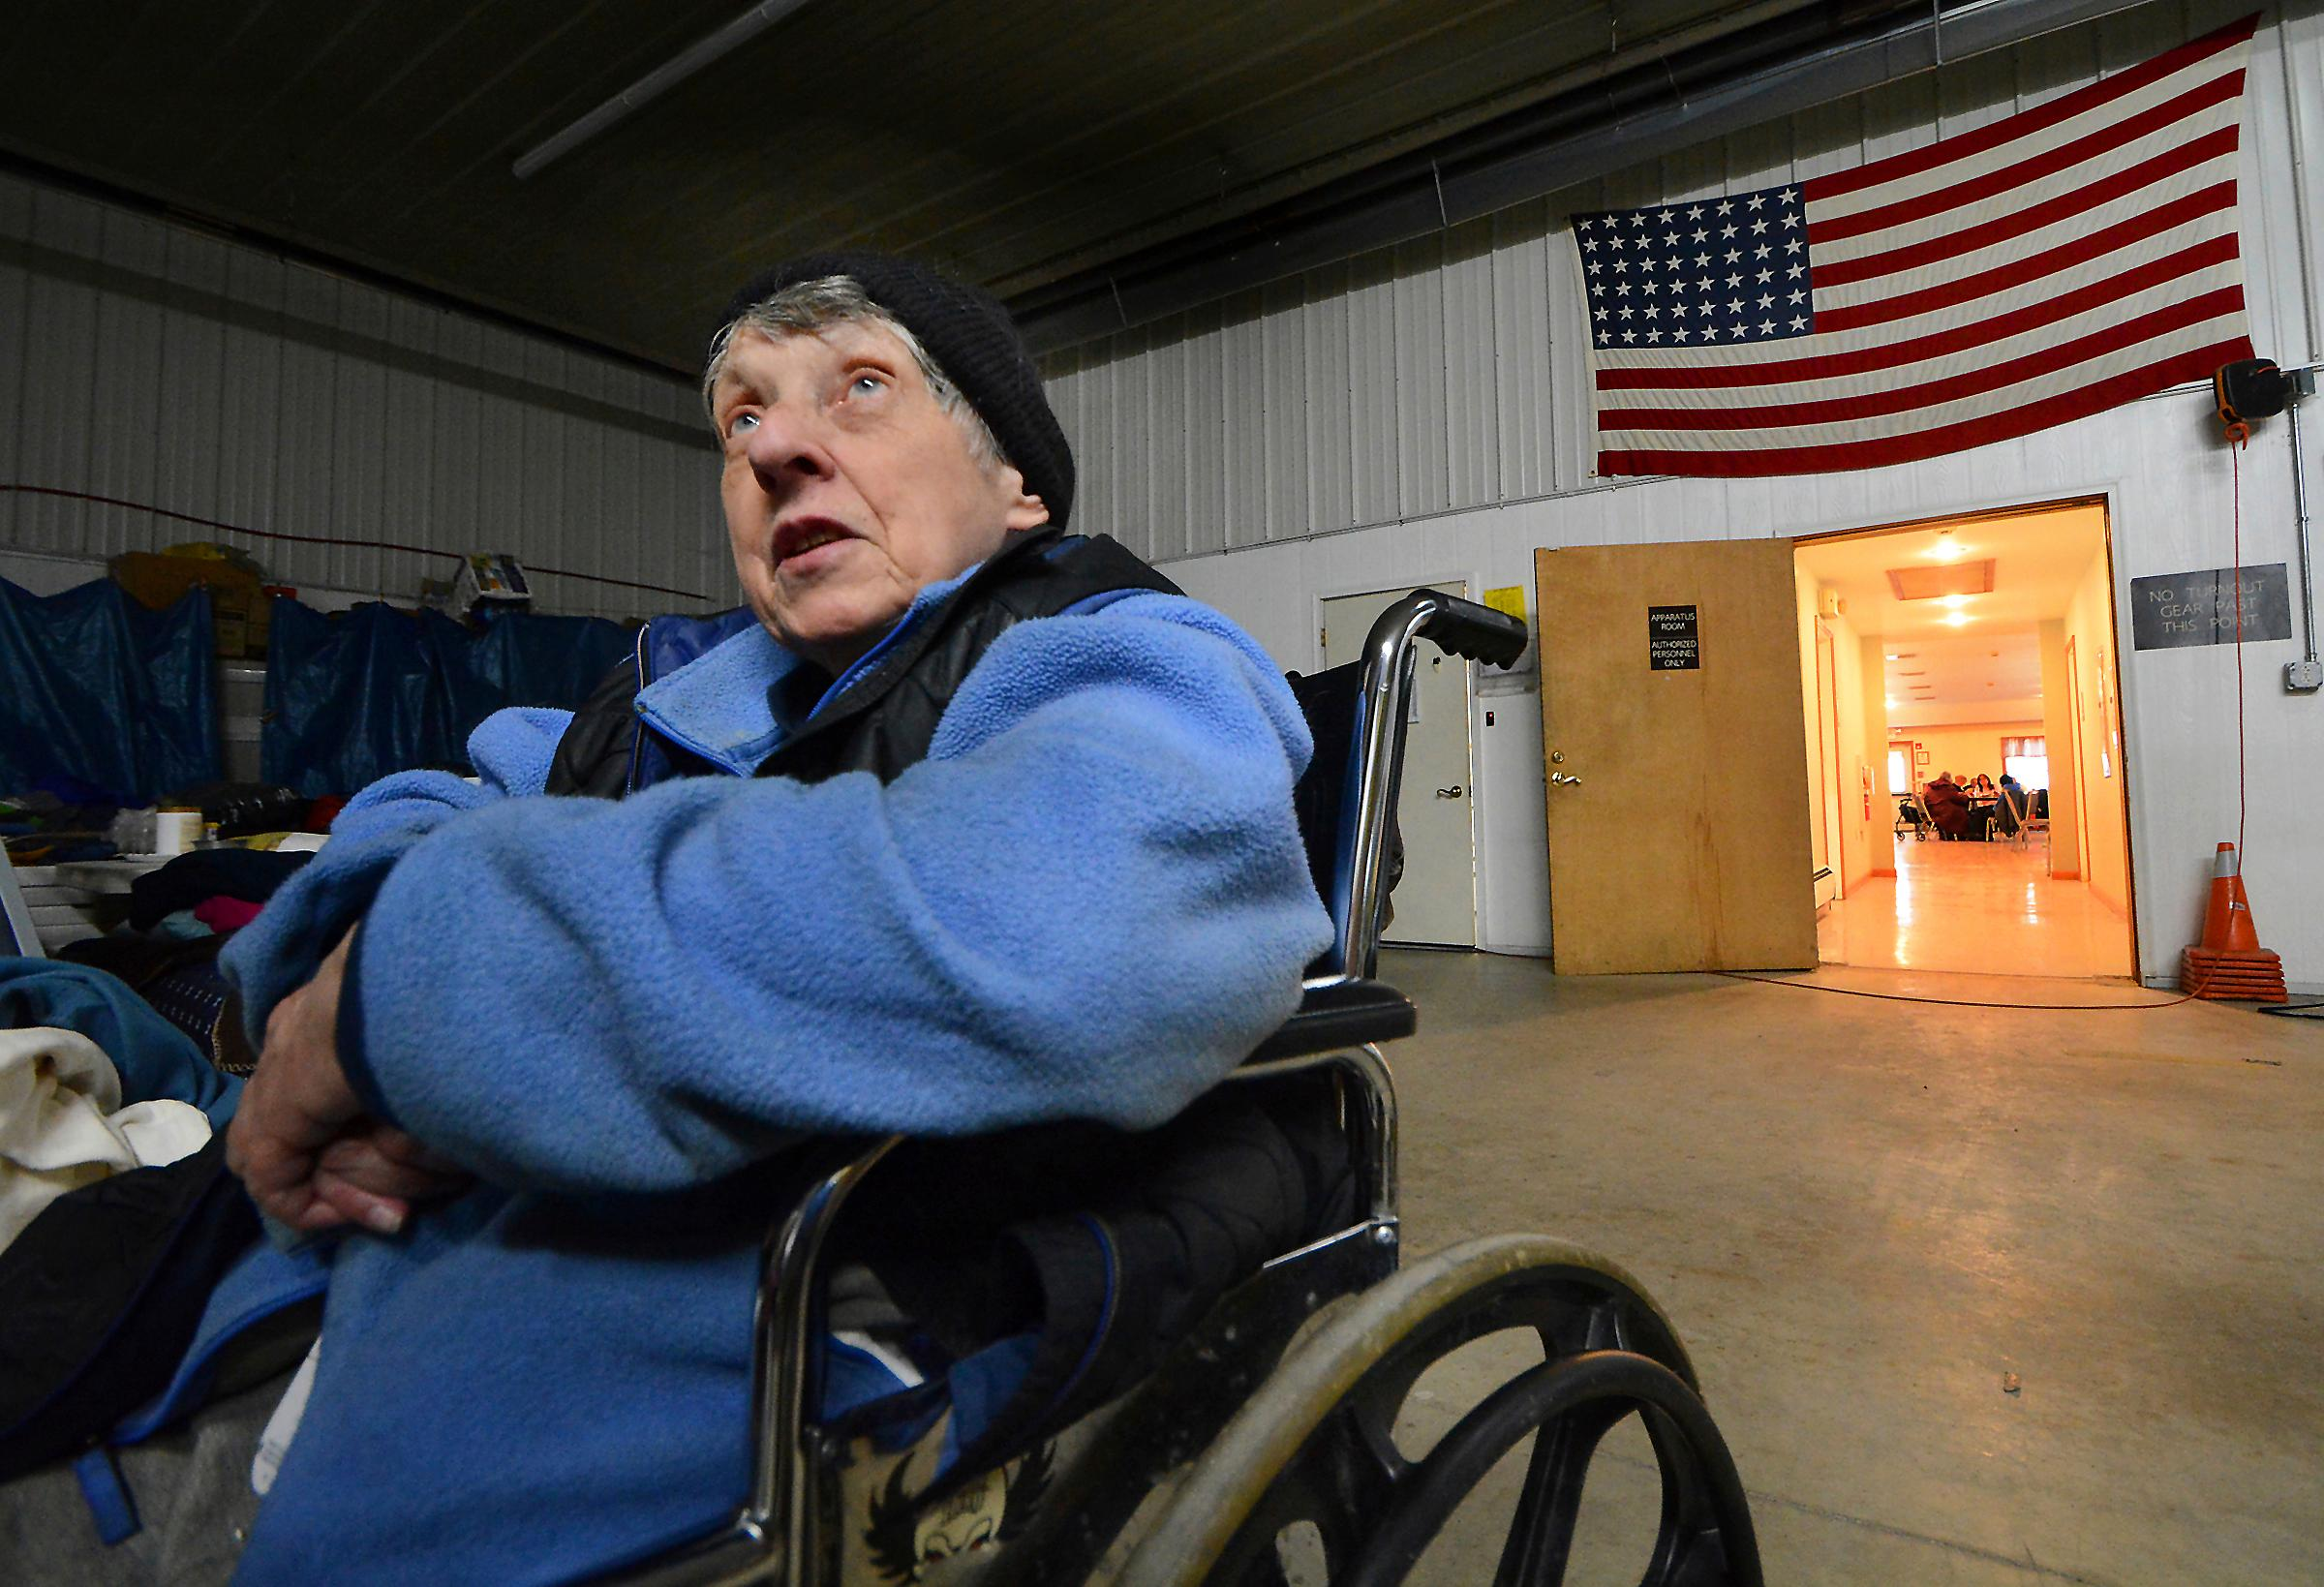 Morgan Sanders, 83, of Dingman Township, Pa., sits in the garage area of the Dingman Township Volunteer Fire Department on Wednesday, March 7, 2018. She and her cats have been staying at the make-shift shelter for several days due to no power at her home. (Butch Comegys/The Scranton Times-Tribune via AP)